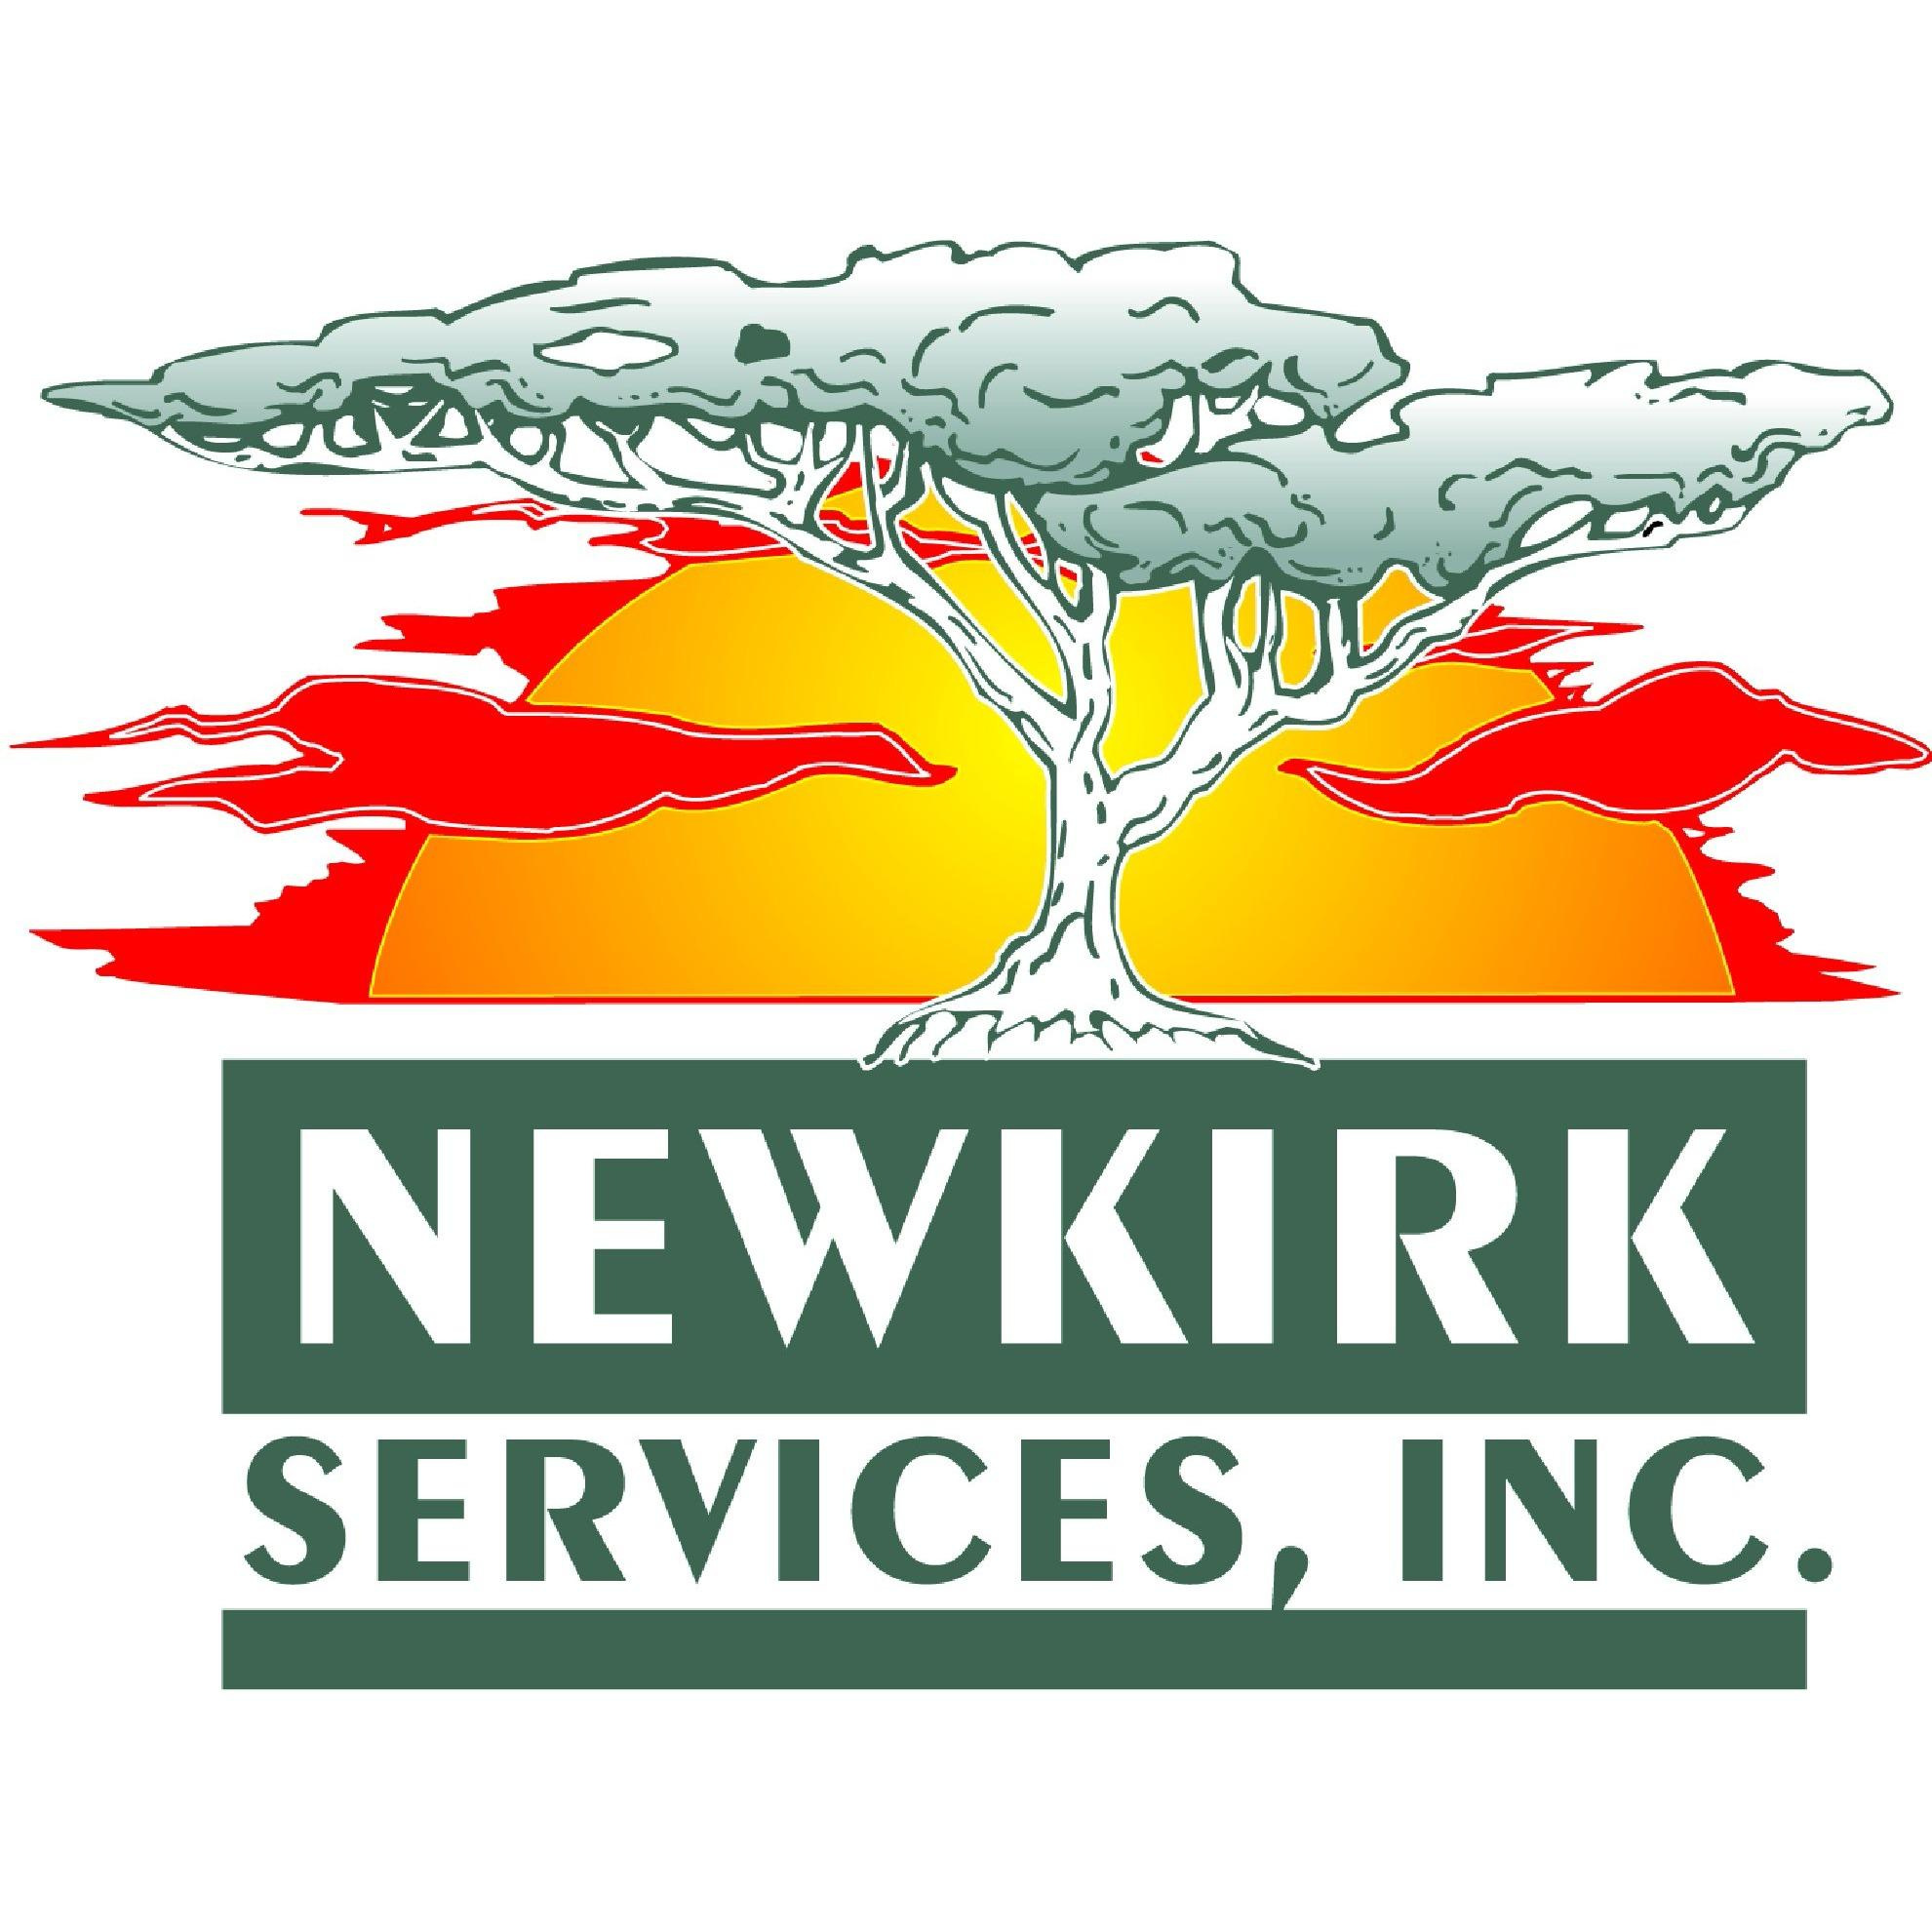 Newkirk Services, Inc.